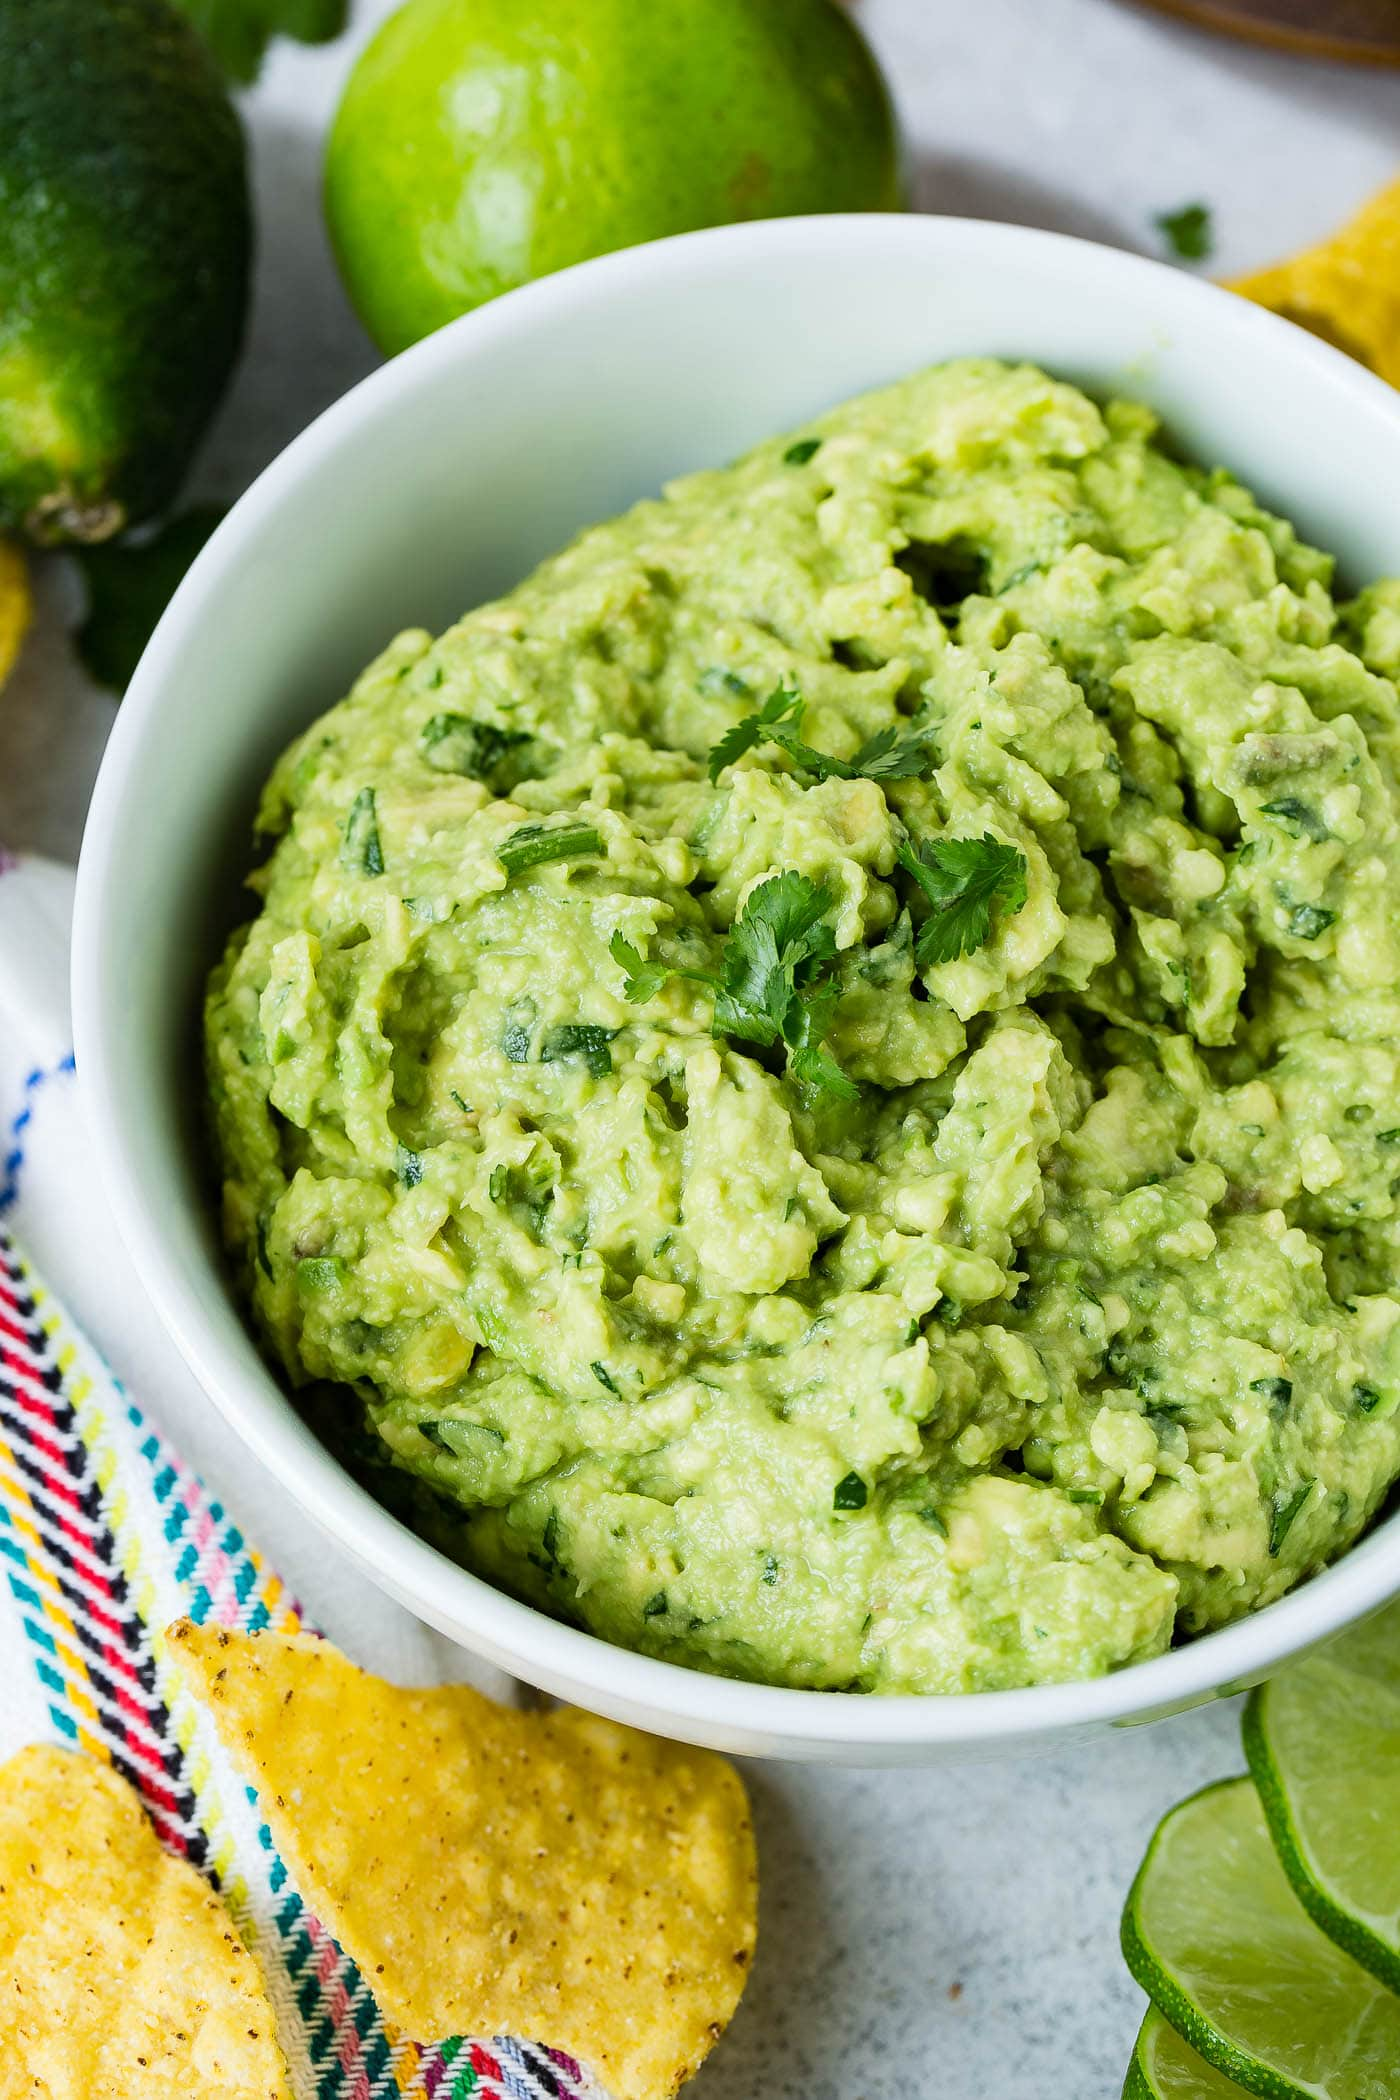 A white bowl of fresh guacamole. You can see the cilantro in the guacamole and a few cilantro leaves are on top. There are a few chips on the table next to the bowl.